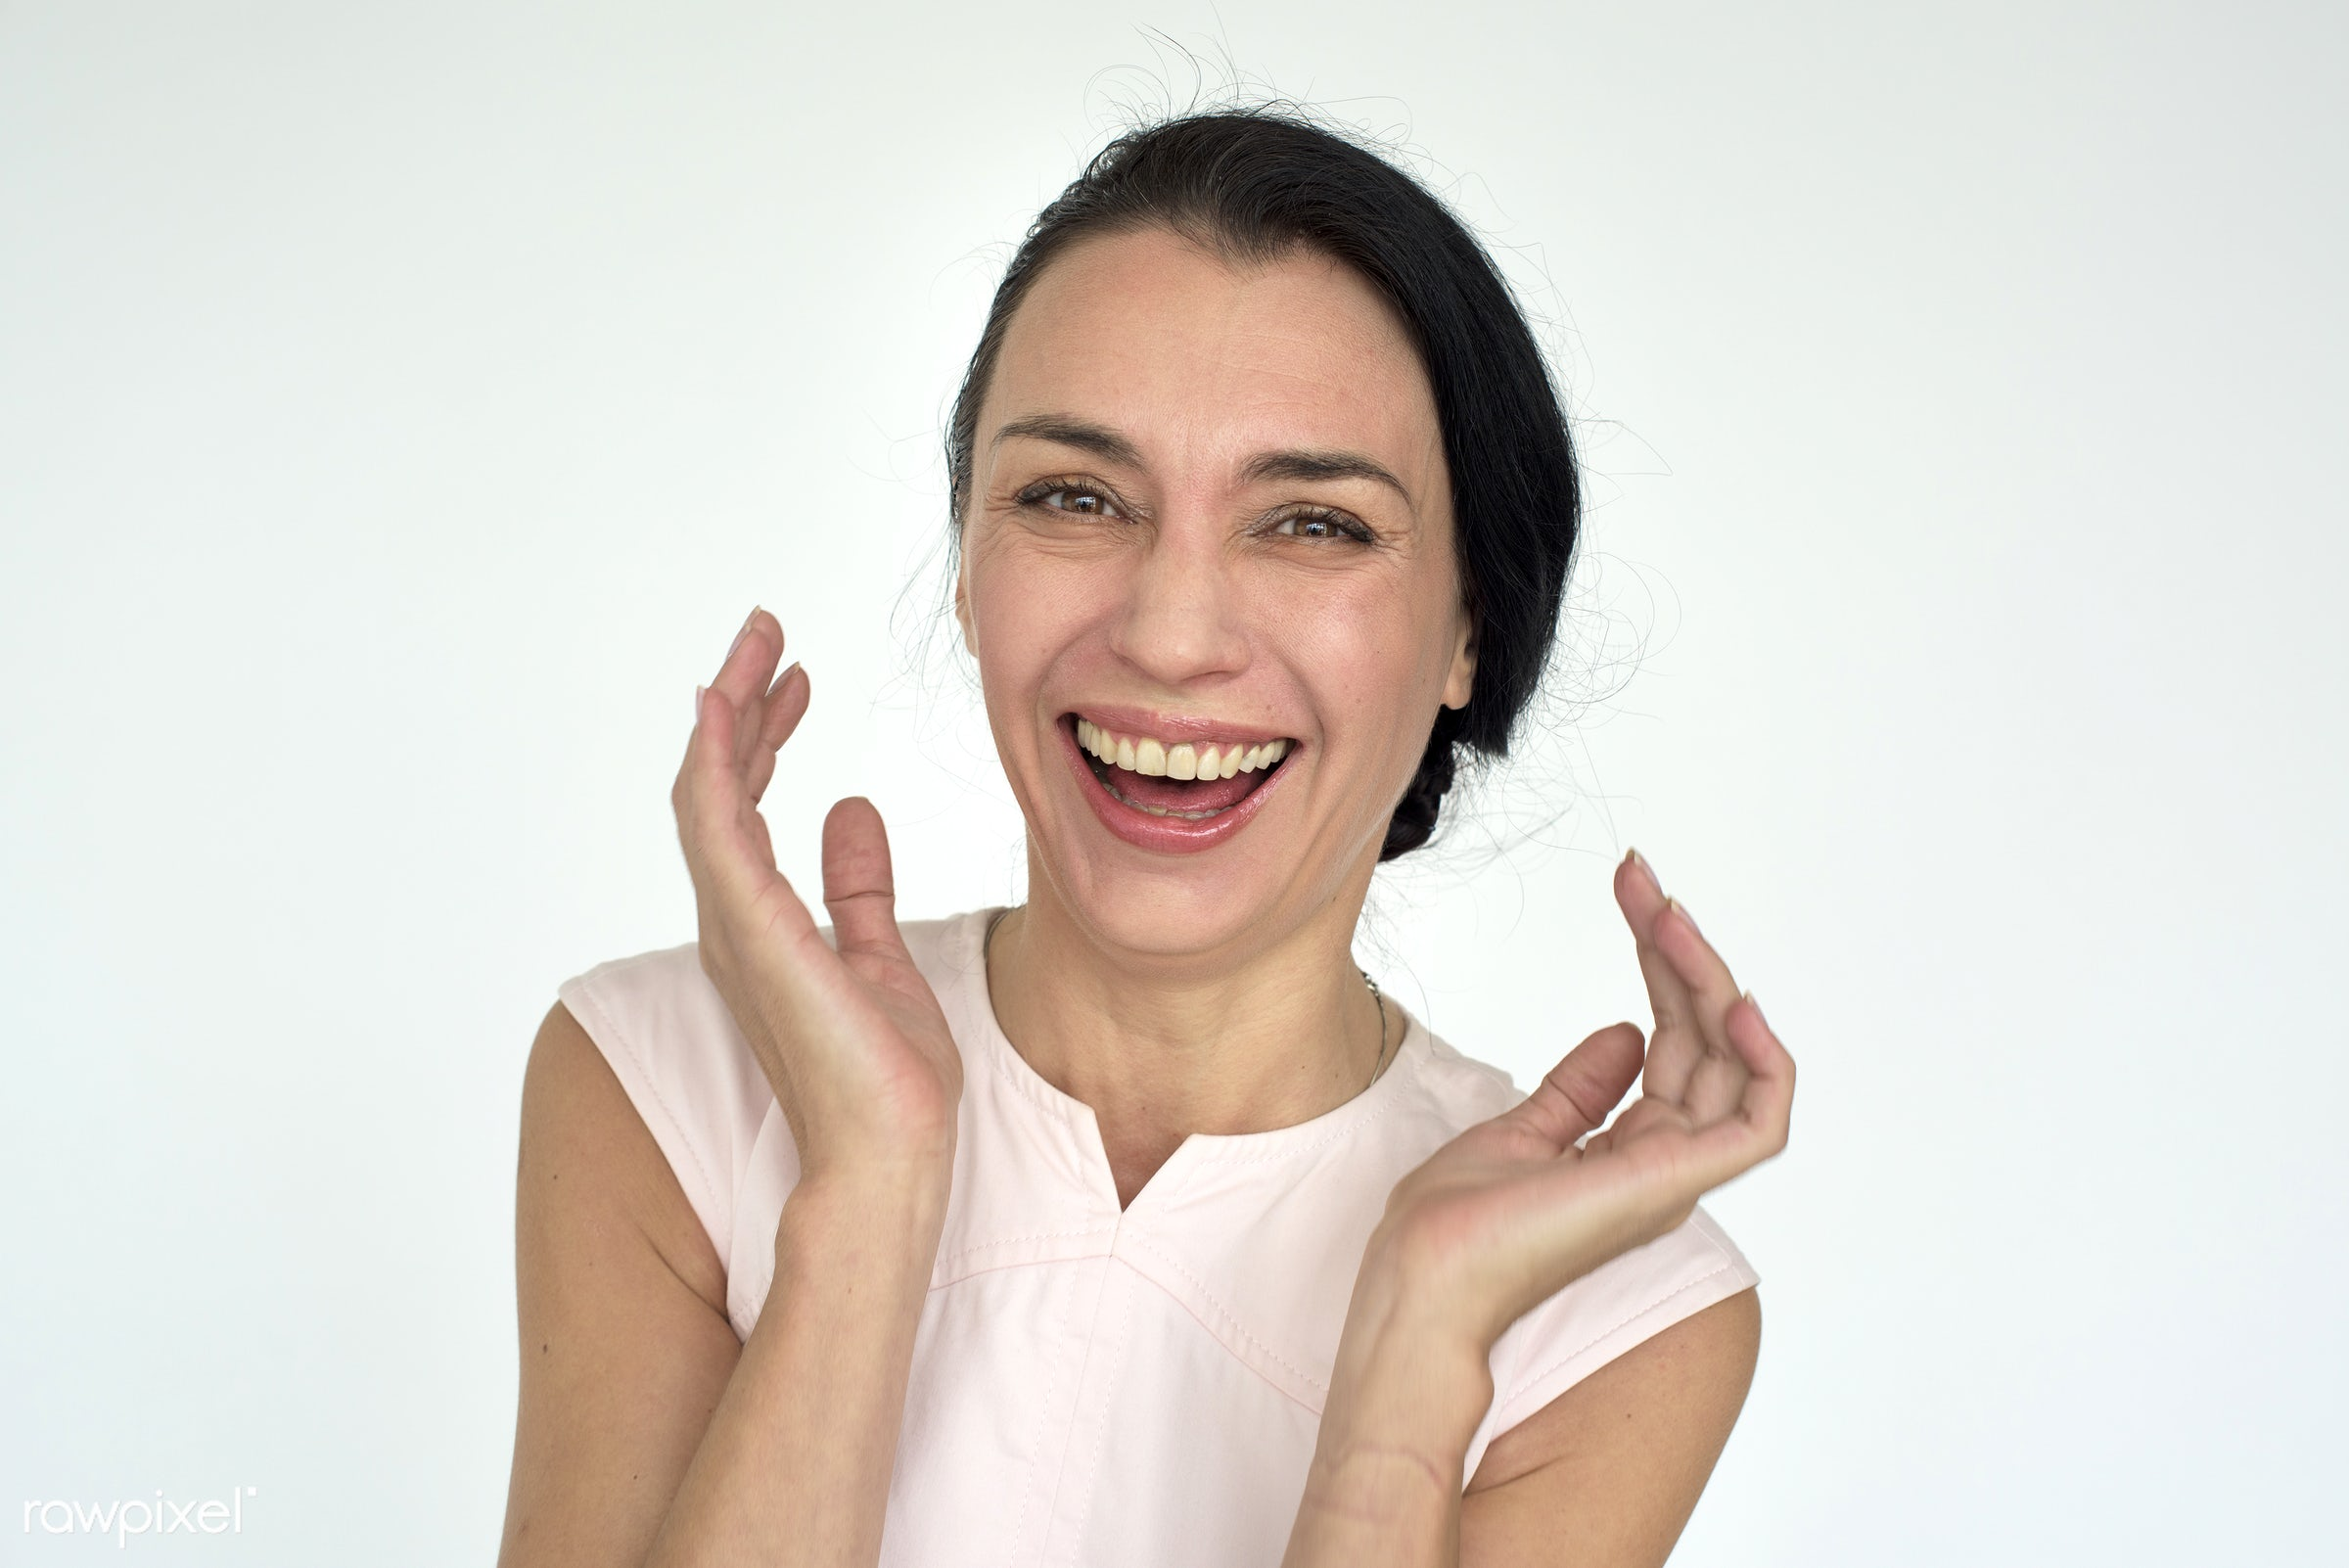 Portrait of a happy caucasian woman - expression, studio, person, people, woman, cheerful, smiling, isolated, white,...